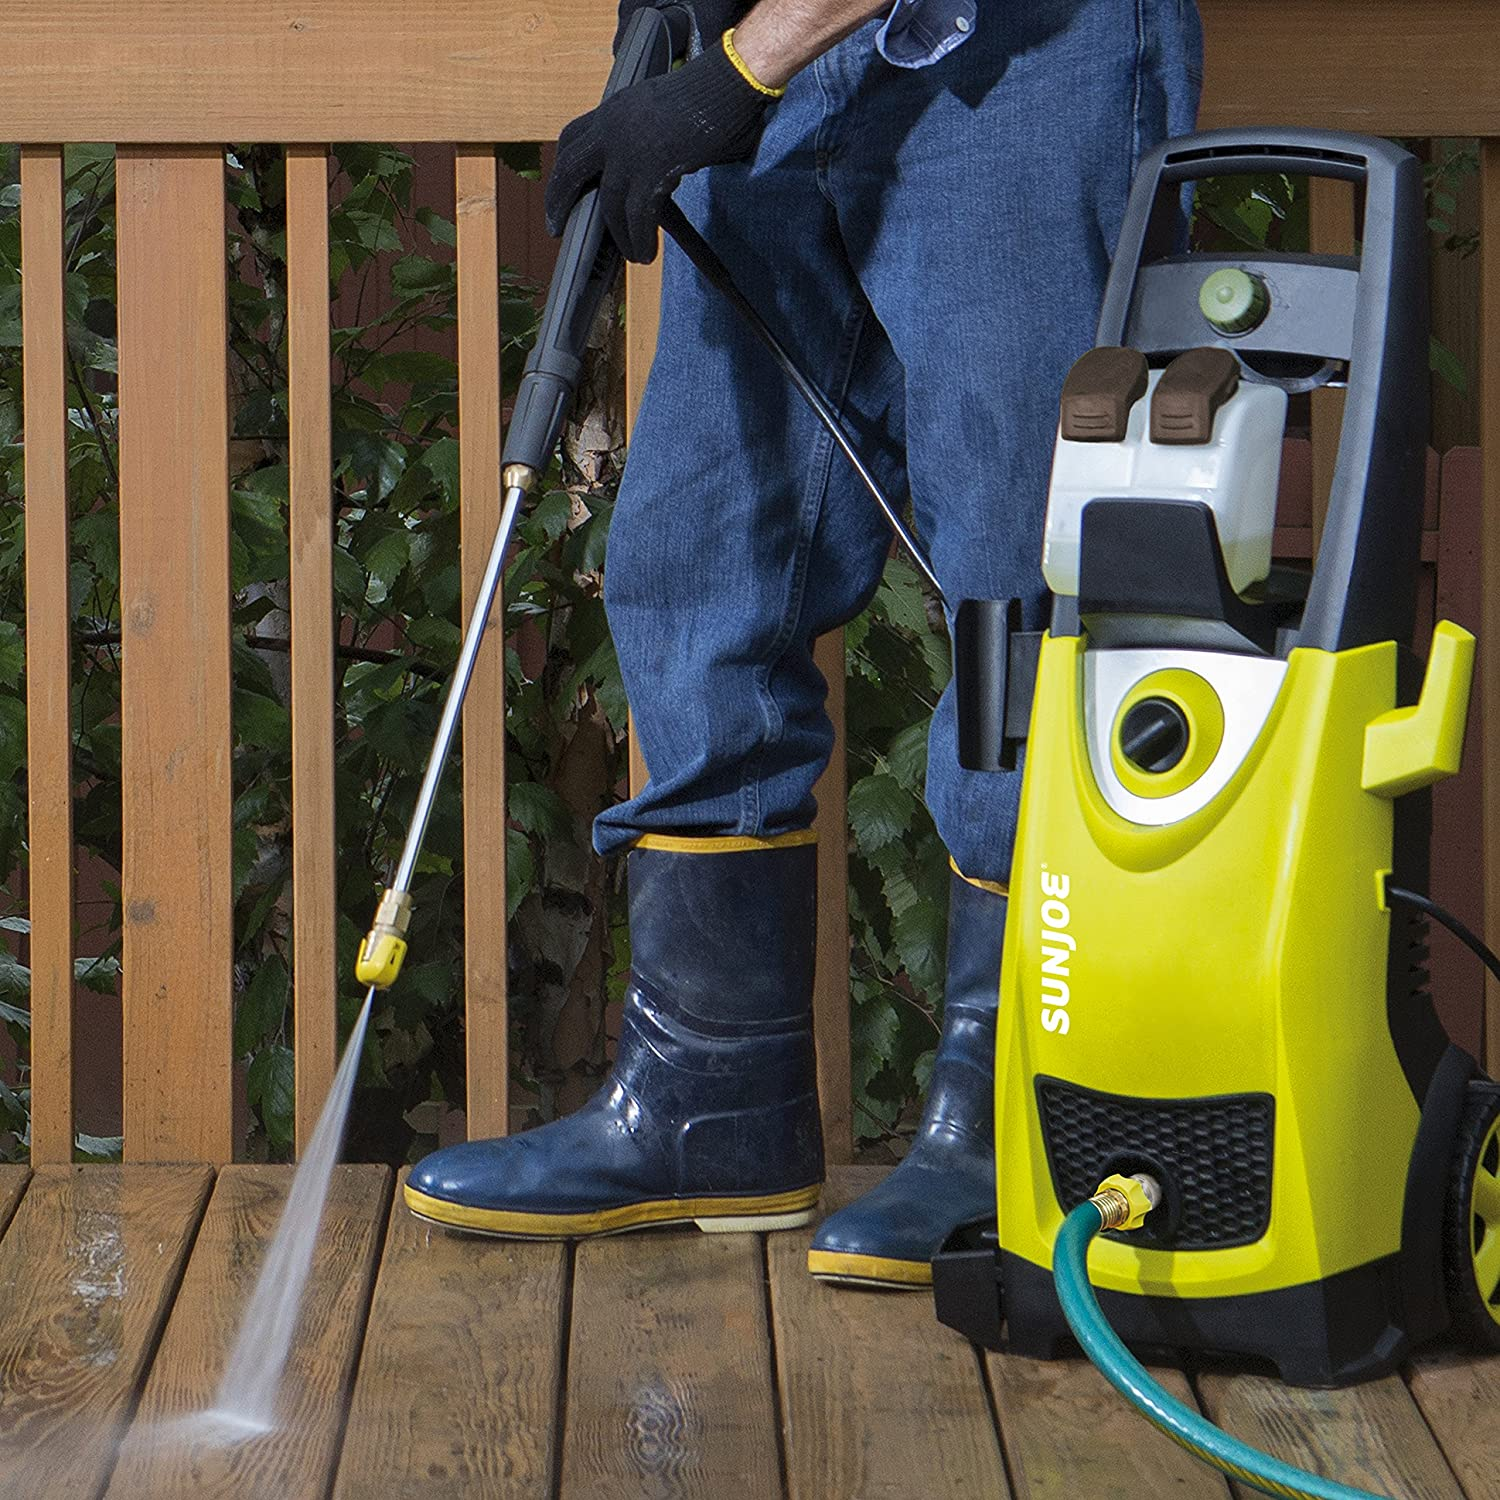 Sun Joe Pressure Washer spx3000